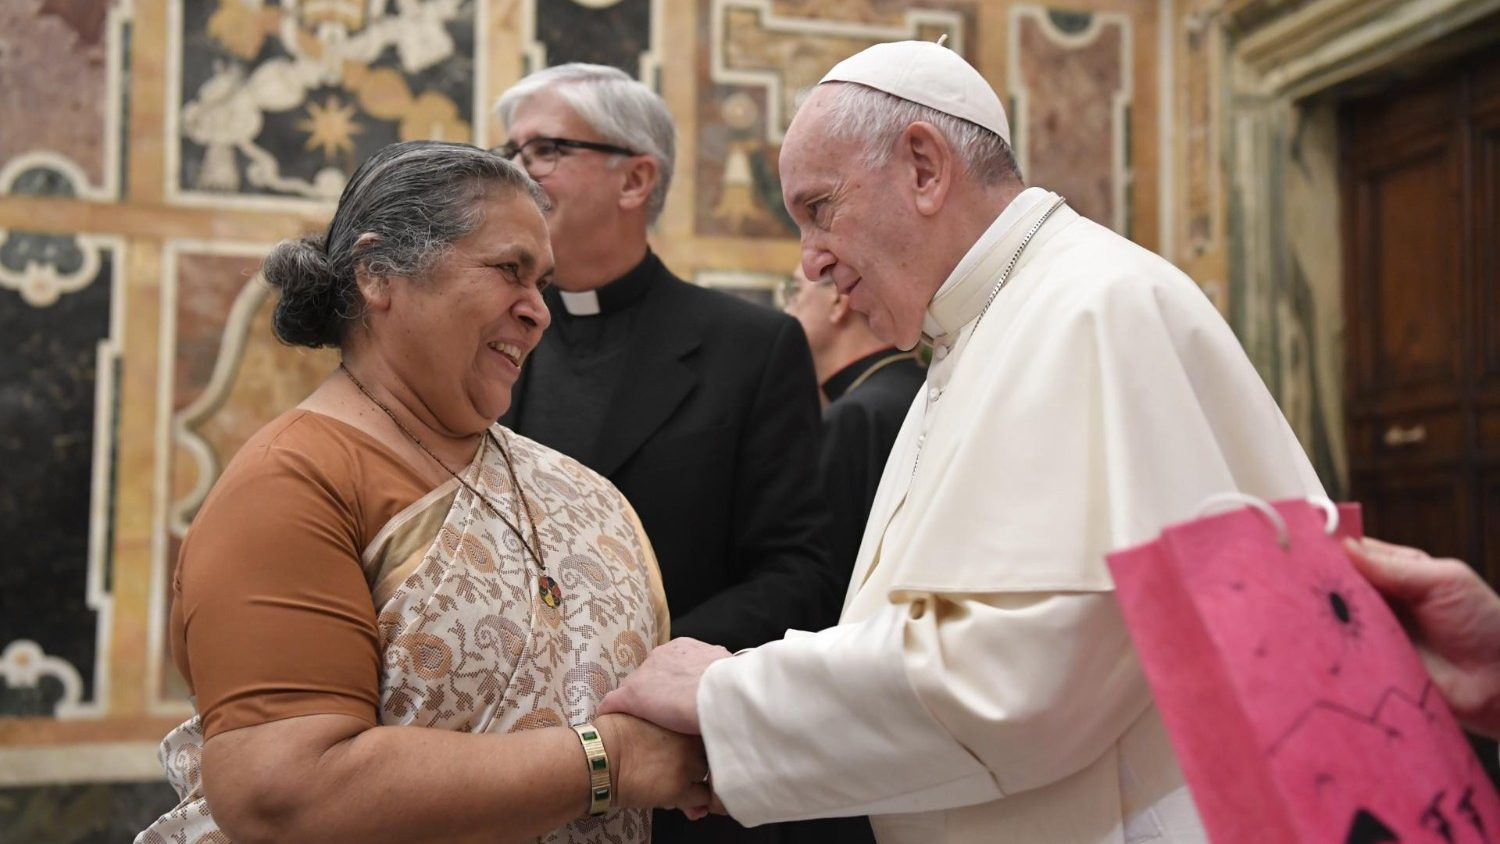 An Indian nun bringing hope to the destitute - Vatican News